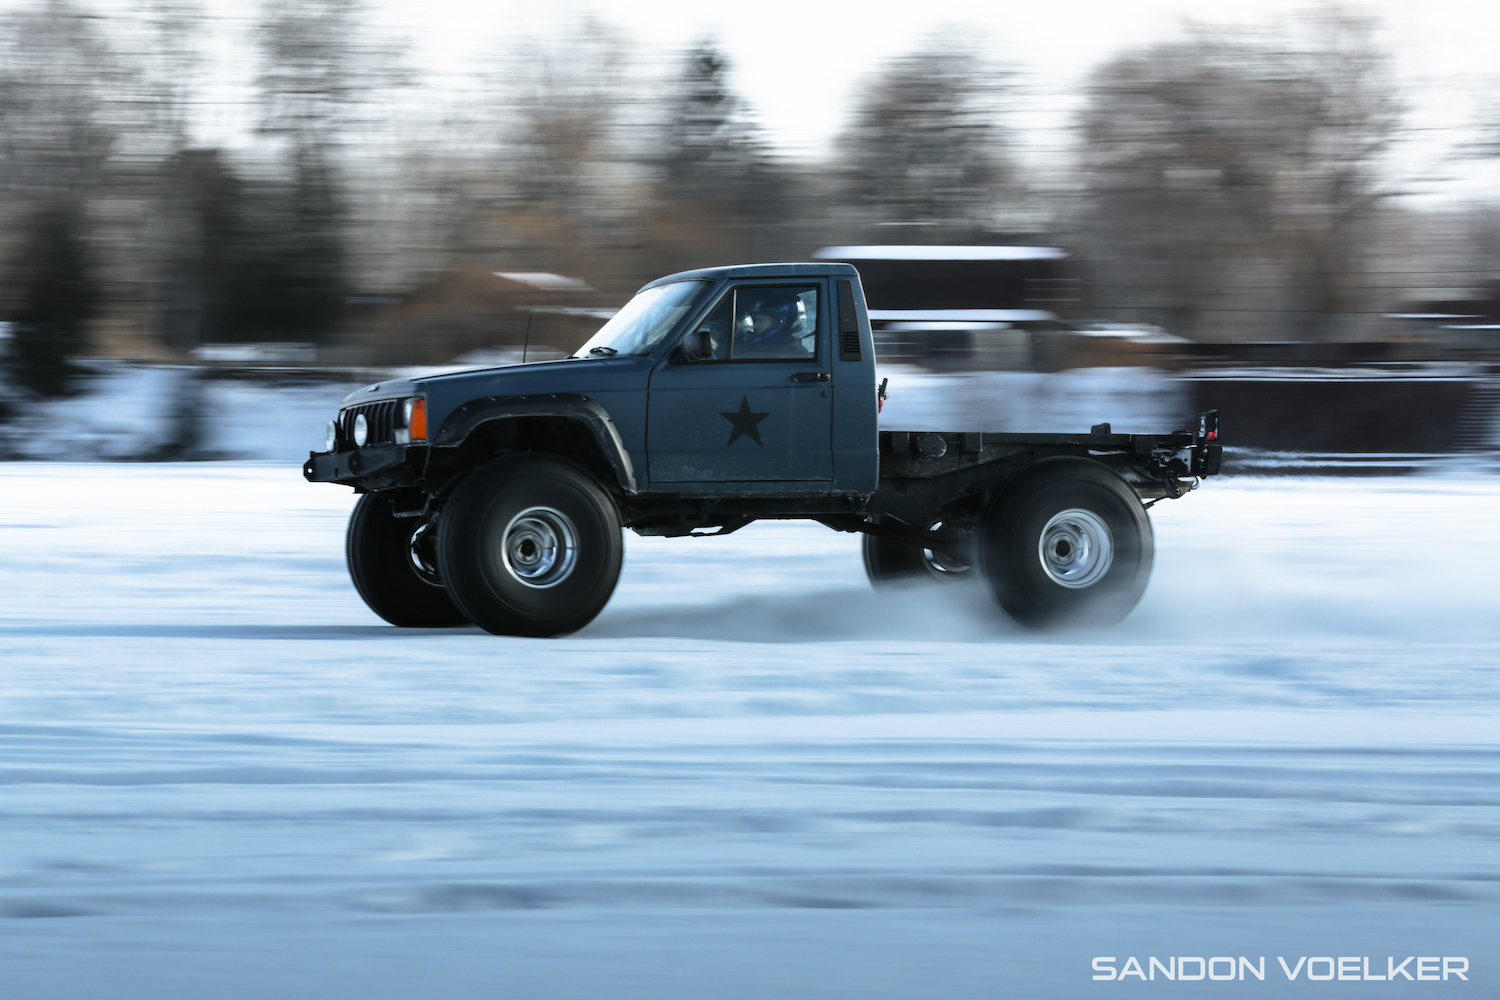 jeep comanche ice race truck side-view action